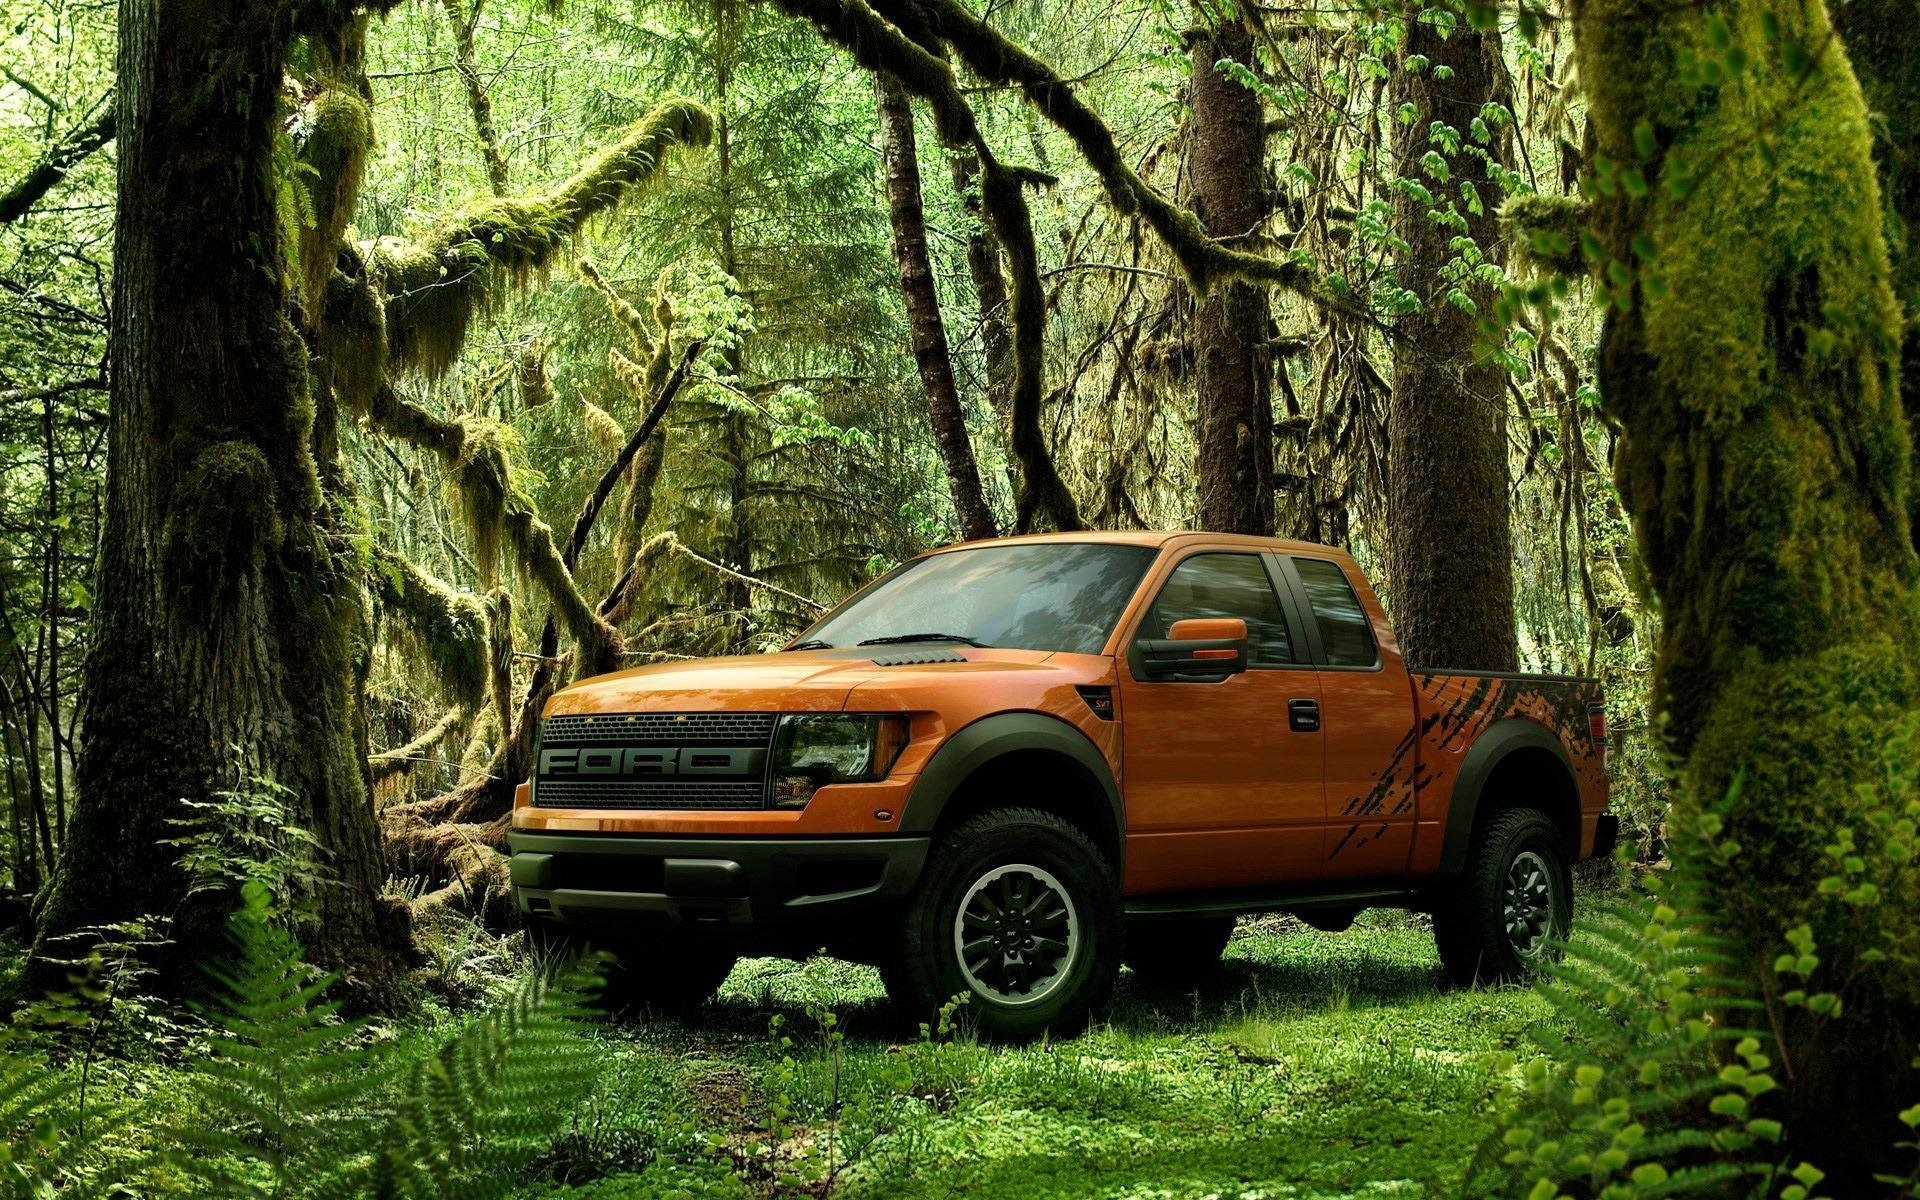 Ford Raptor Full HD Fond Dcran And Arrire Plan